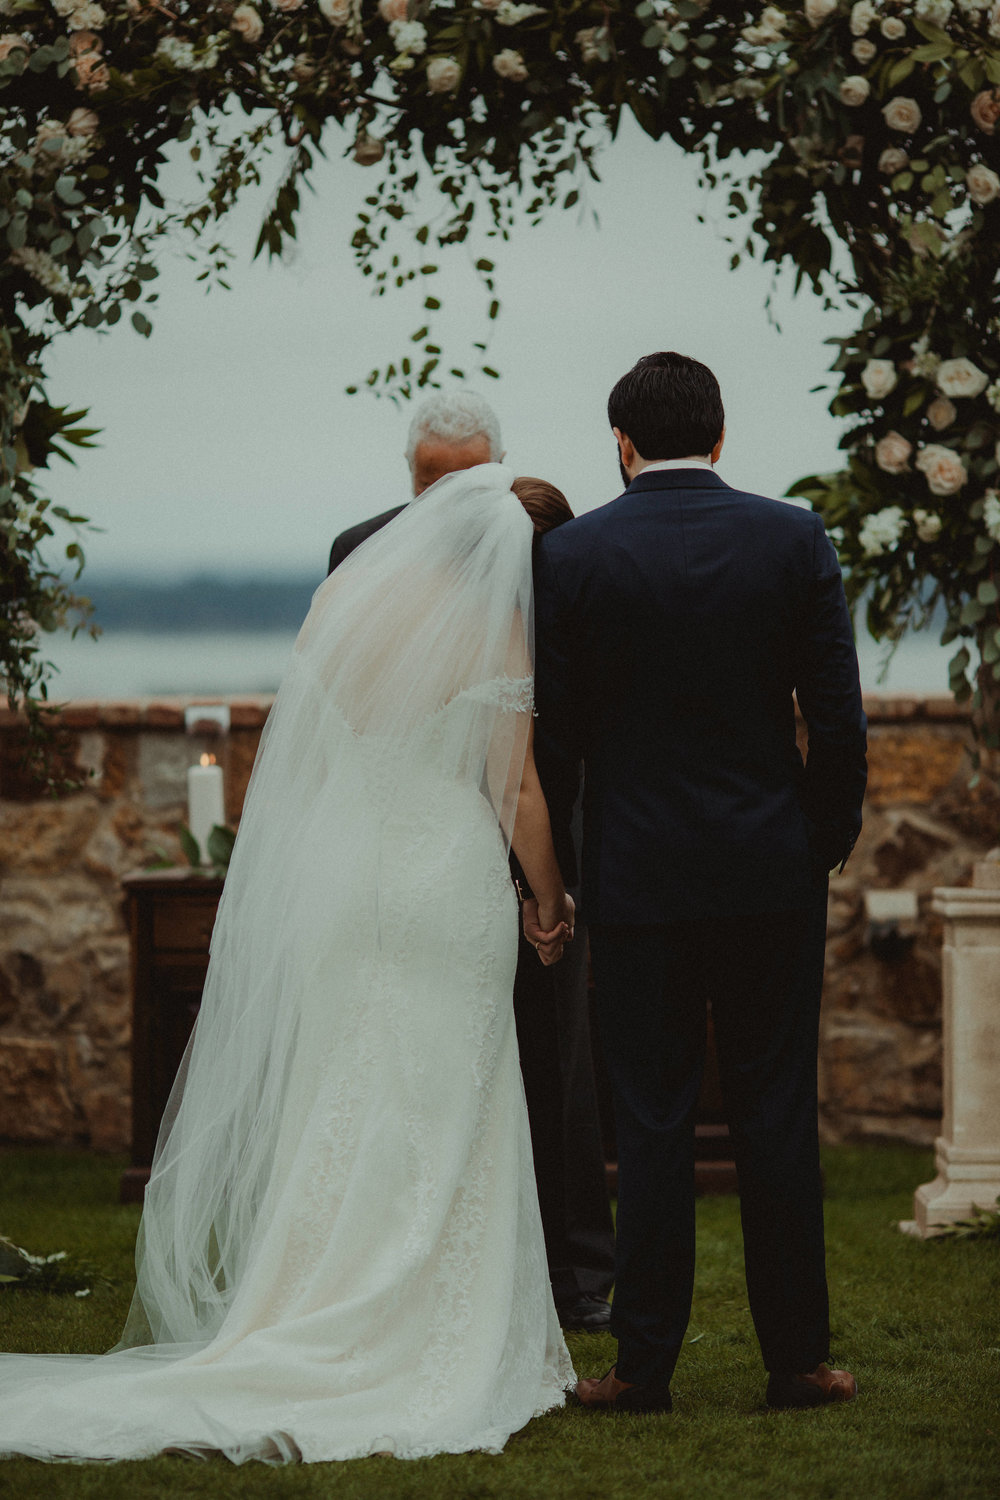 Outdoor wedding ceremony encircled by roses with a lakeside view